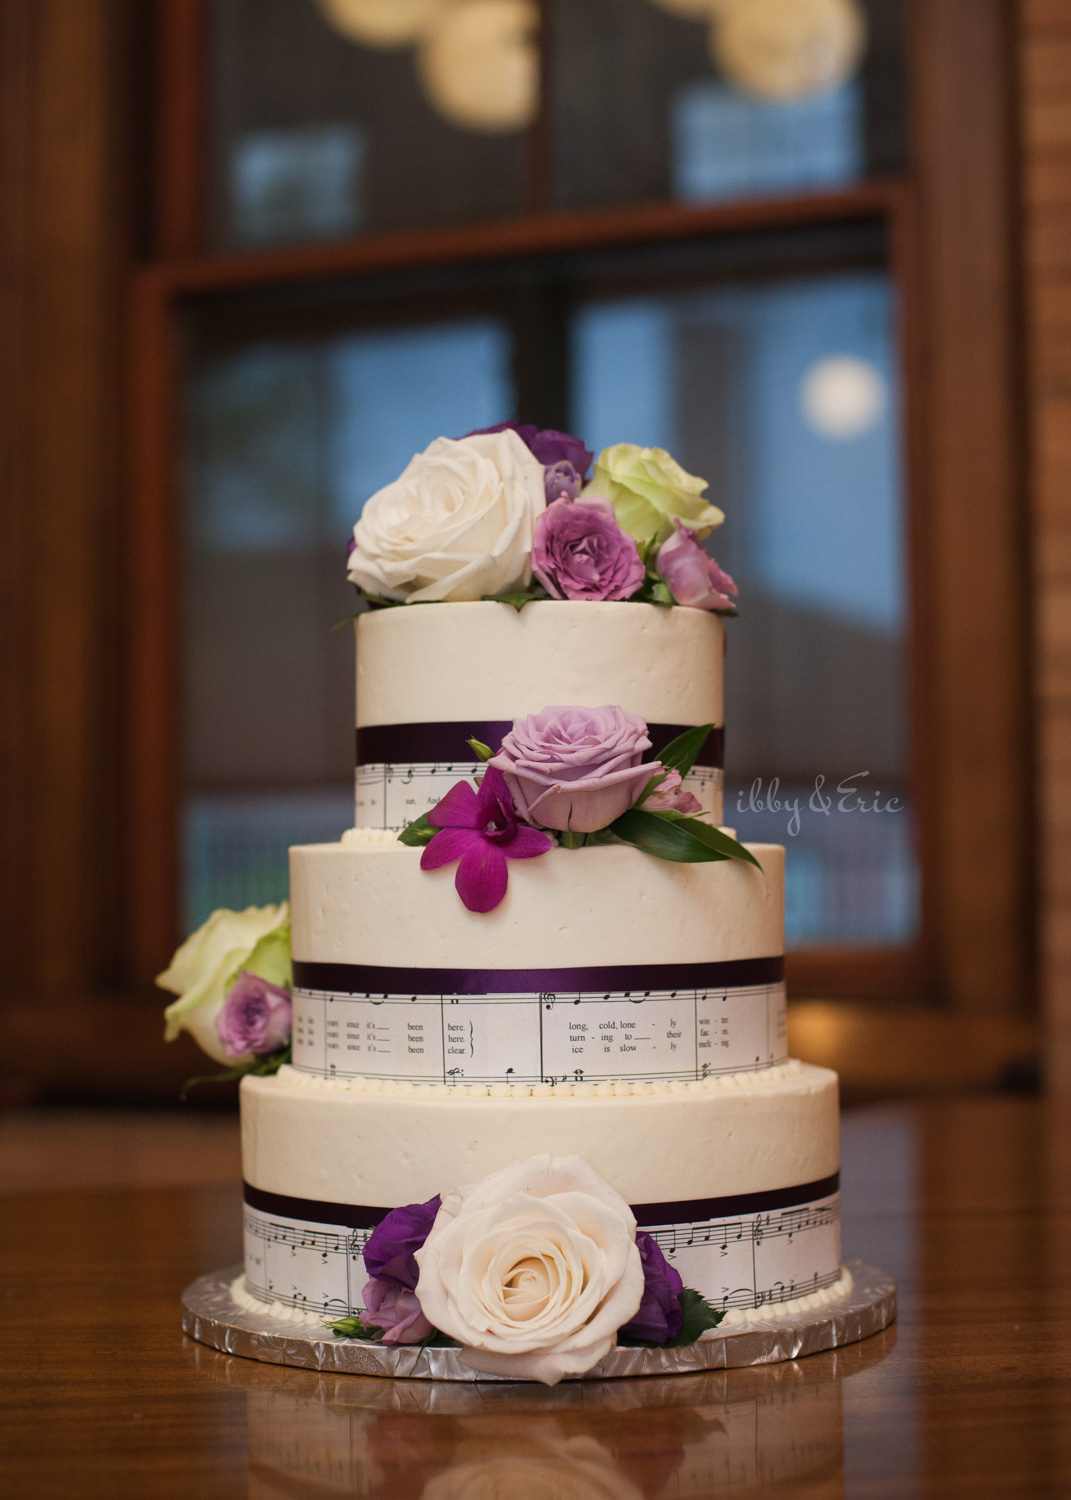 Three tier wedding cake with floral rose cake topper and sheet music wrapped around each layer.